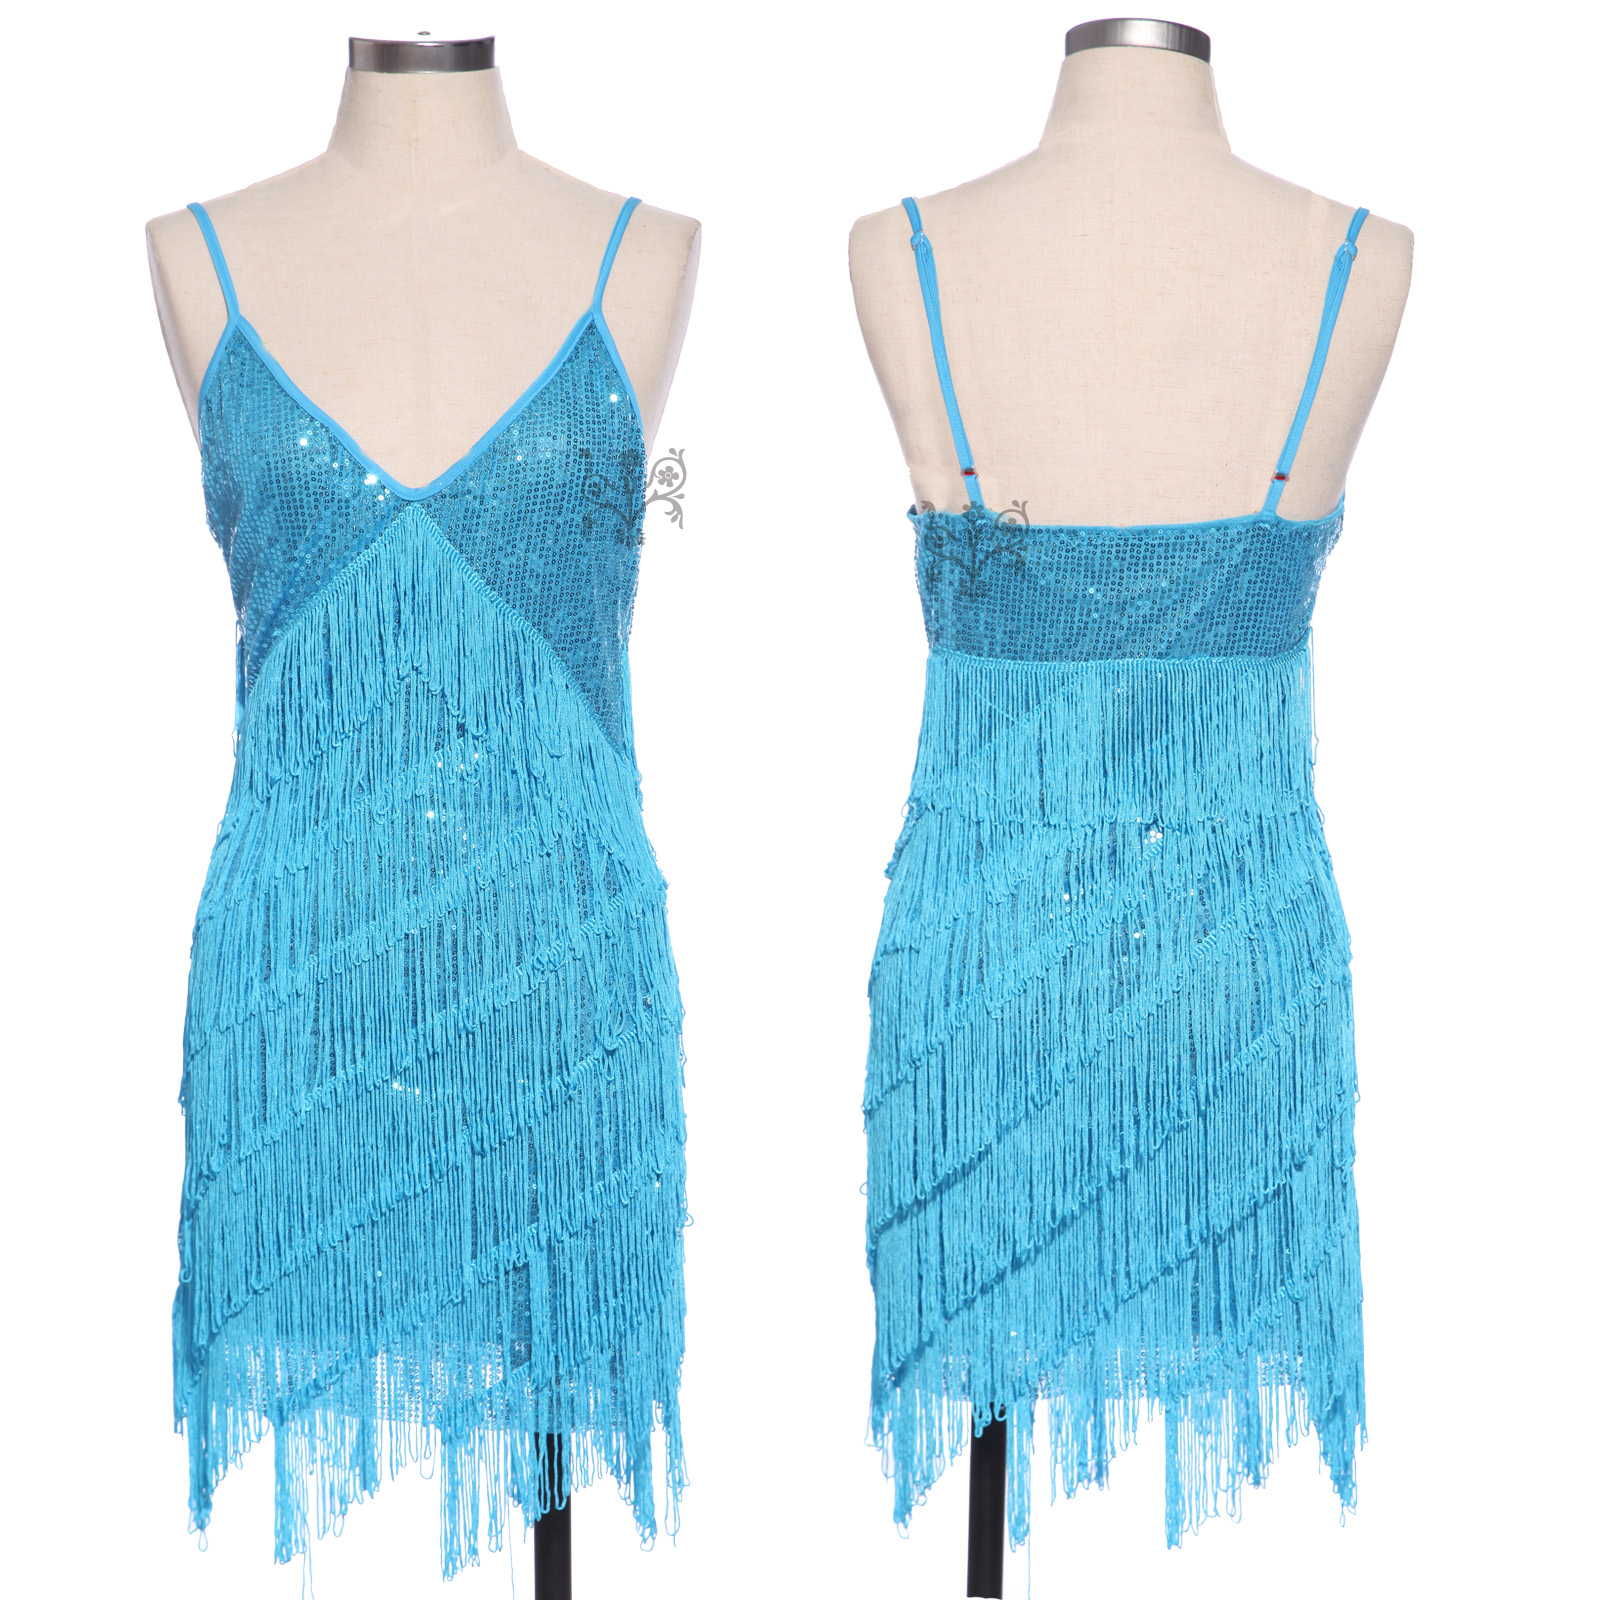 New 1920s Vintage Flapper Girl Sequin Fringed Cocktail Party Dress ...